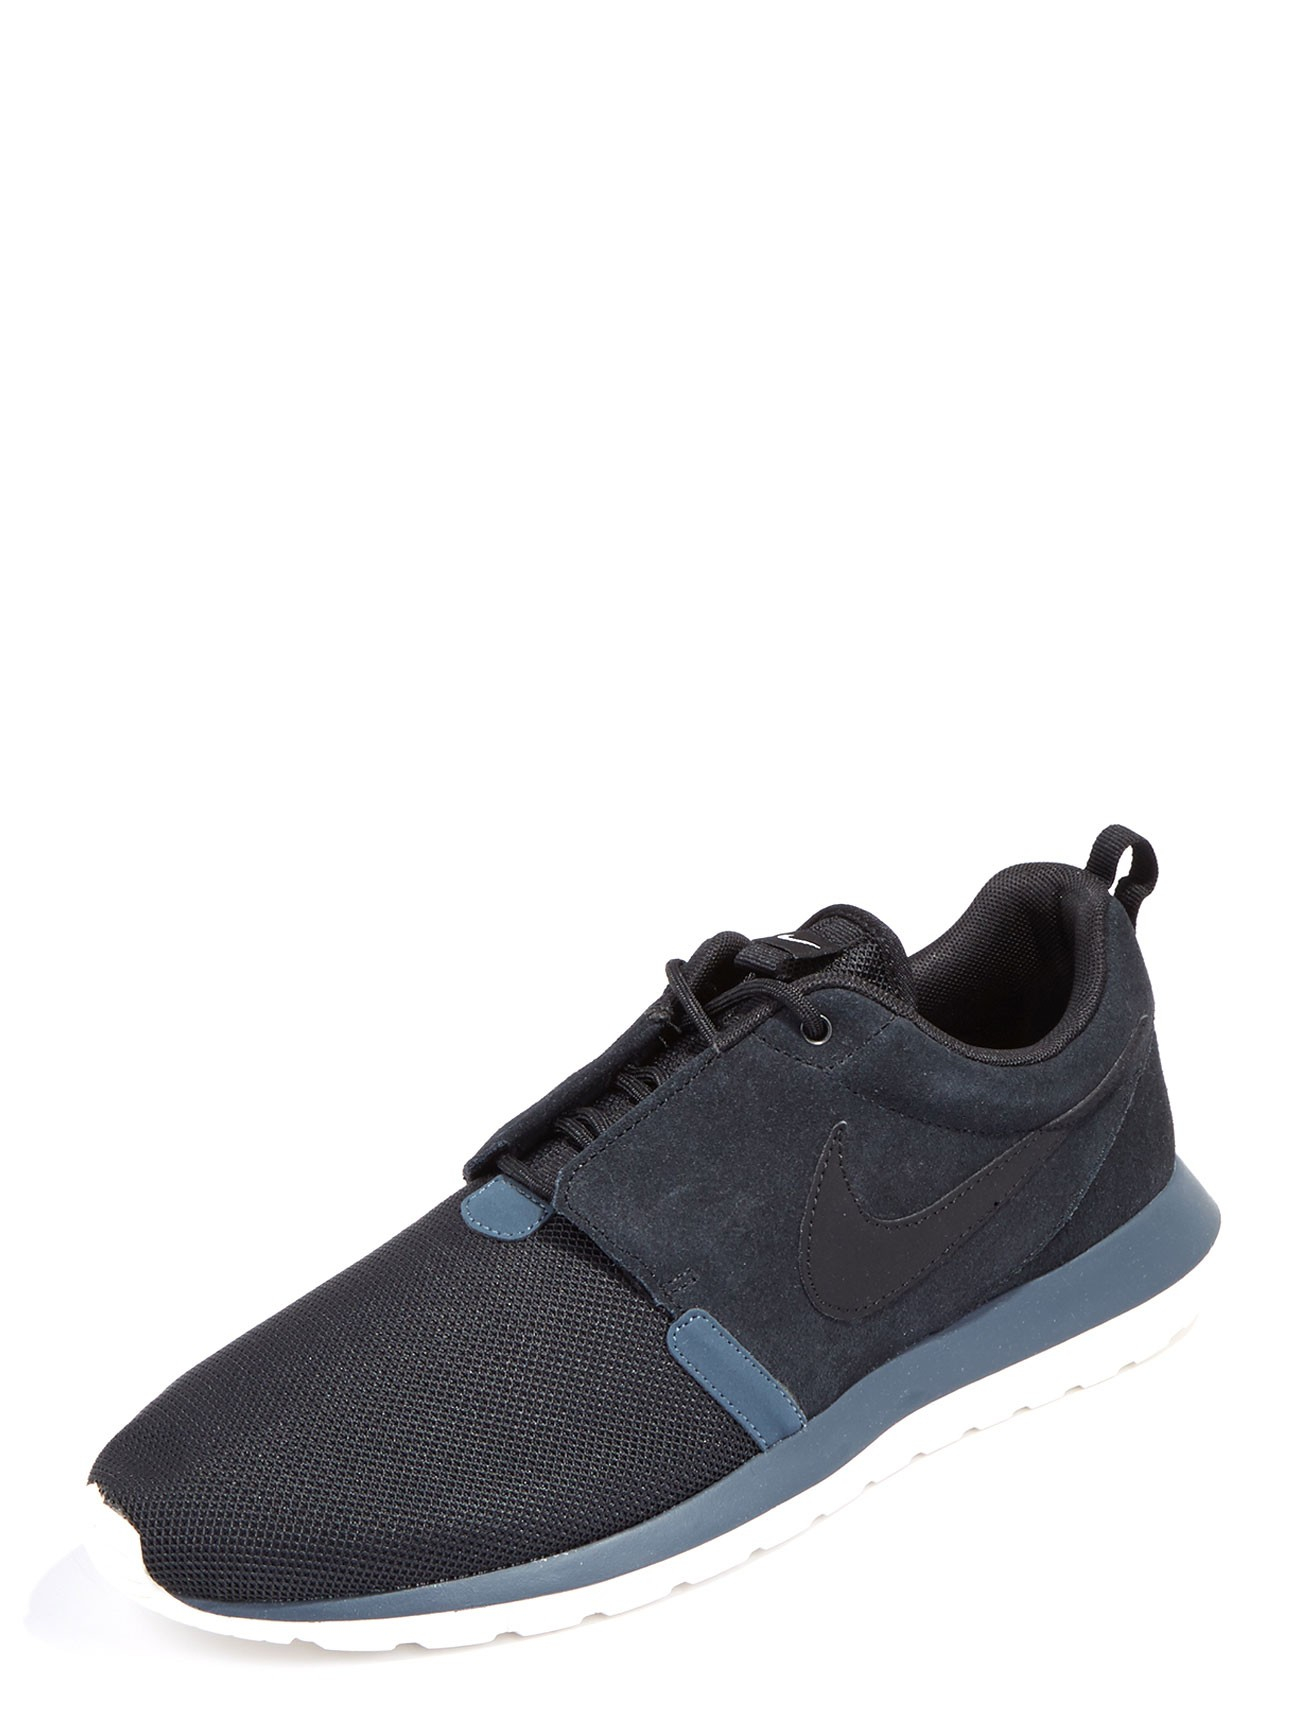 Heren Nike Roshe Run Suede Black Green Shoes Pictures to pin on